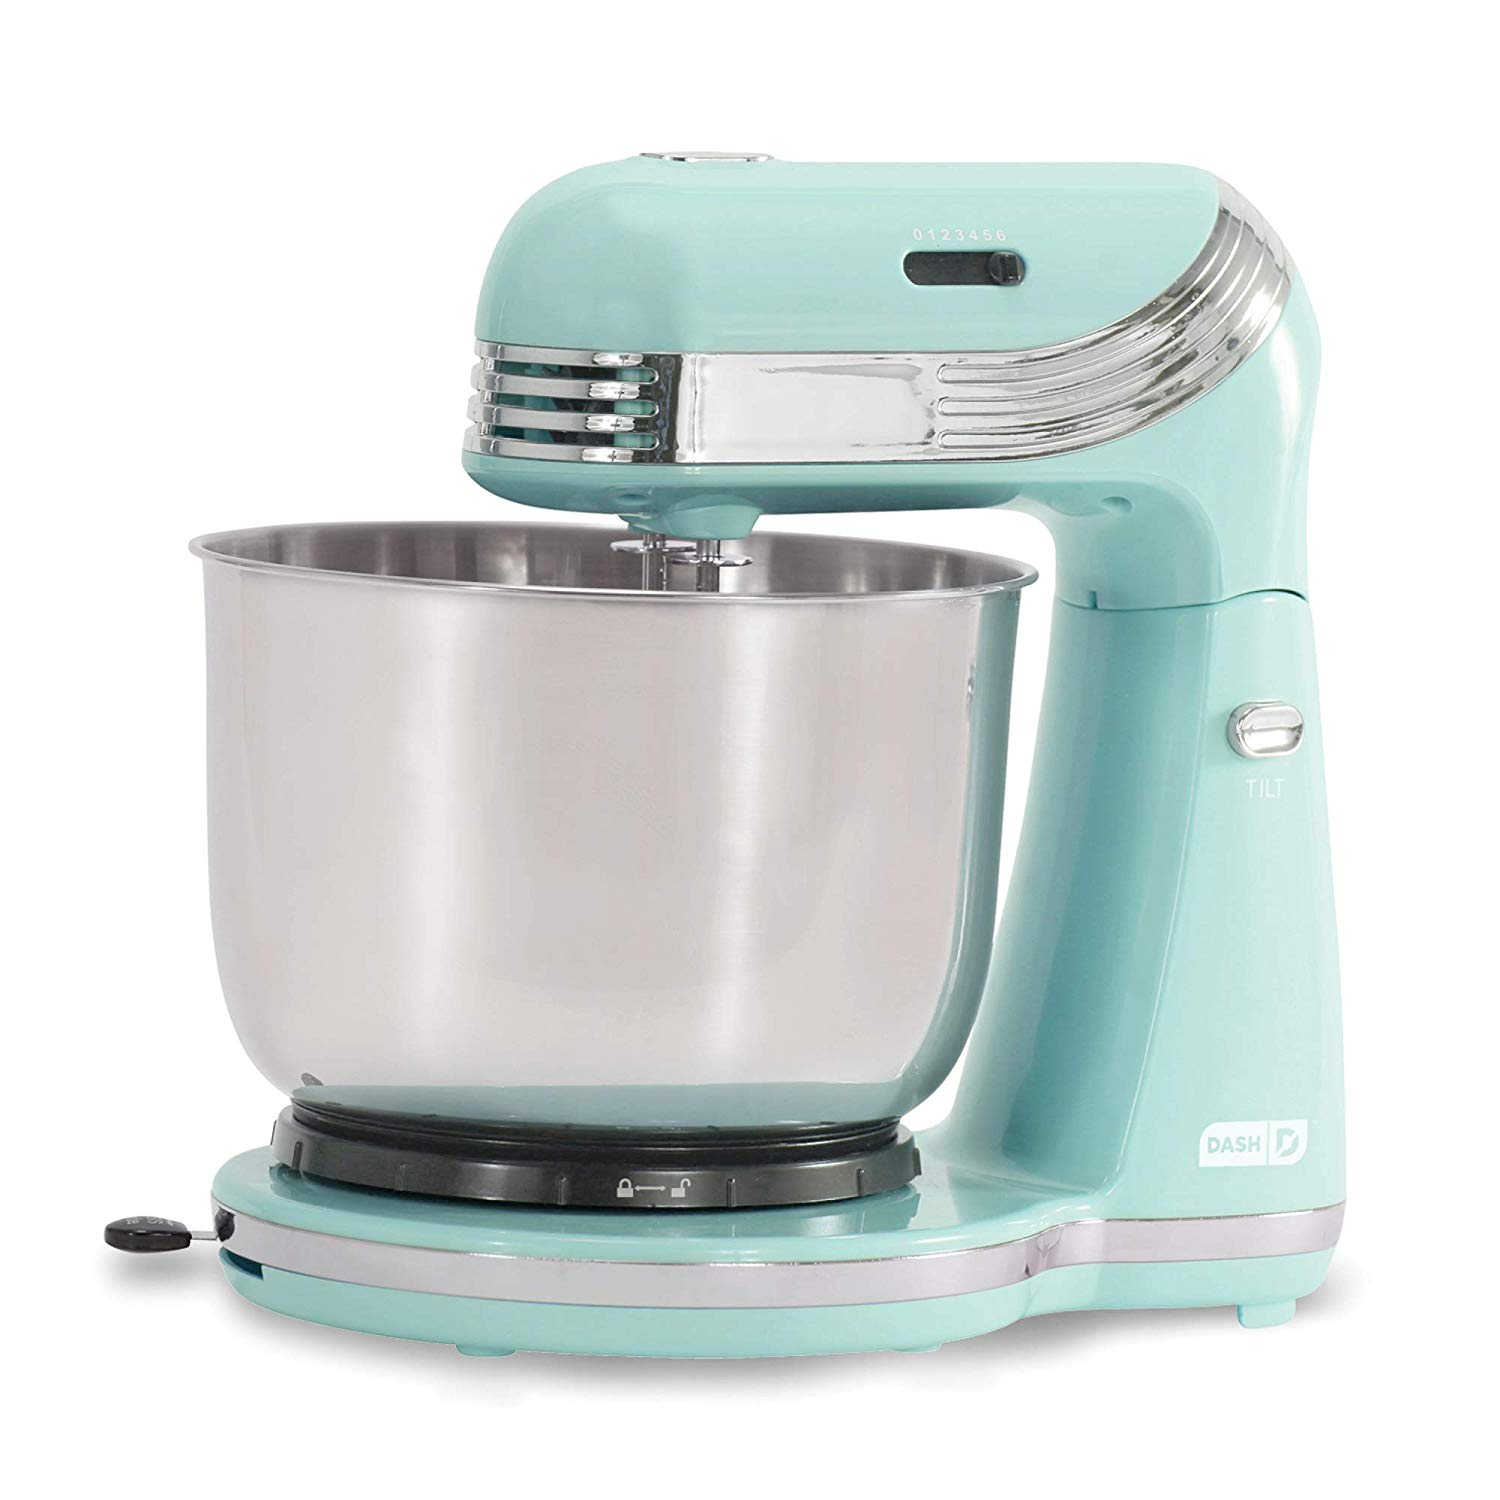 electric mixers make great gifts for mom who bakes